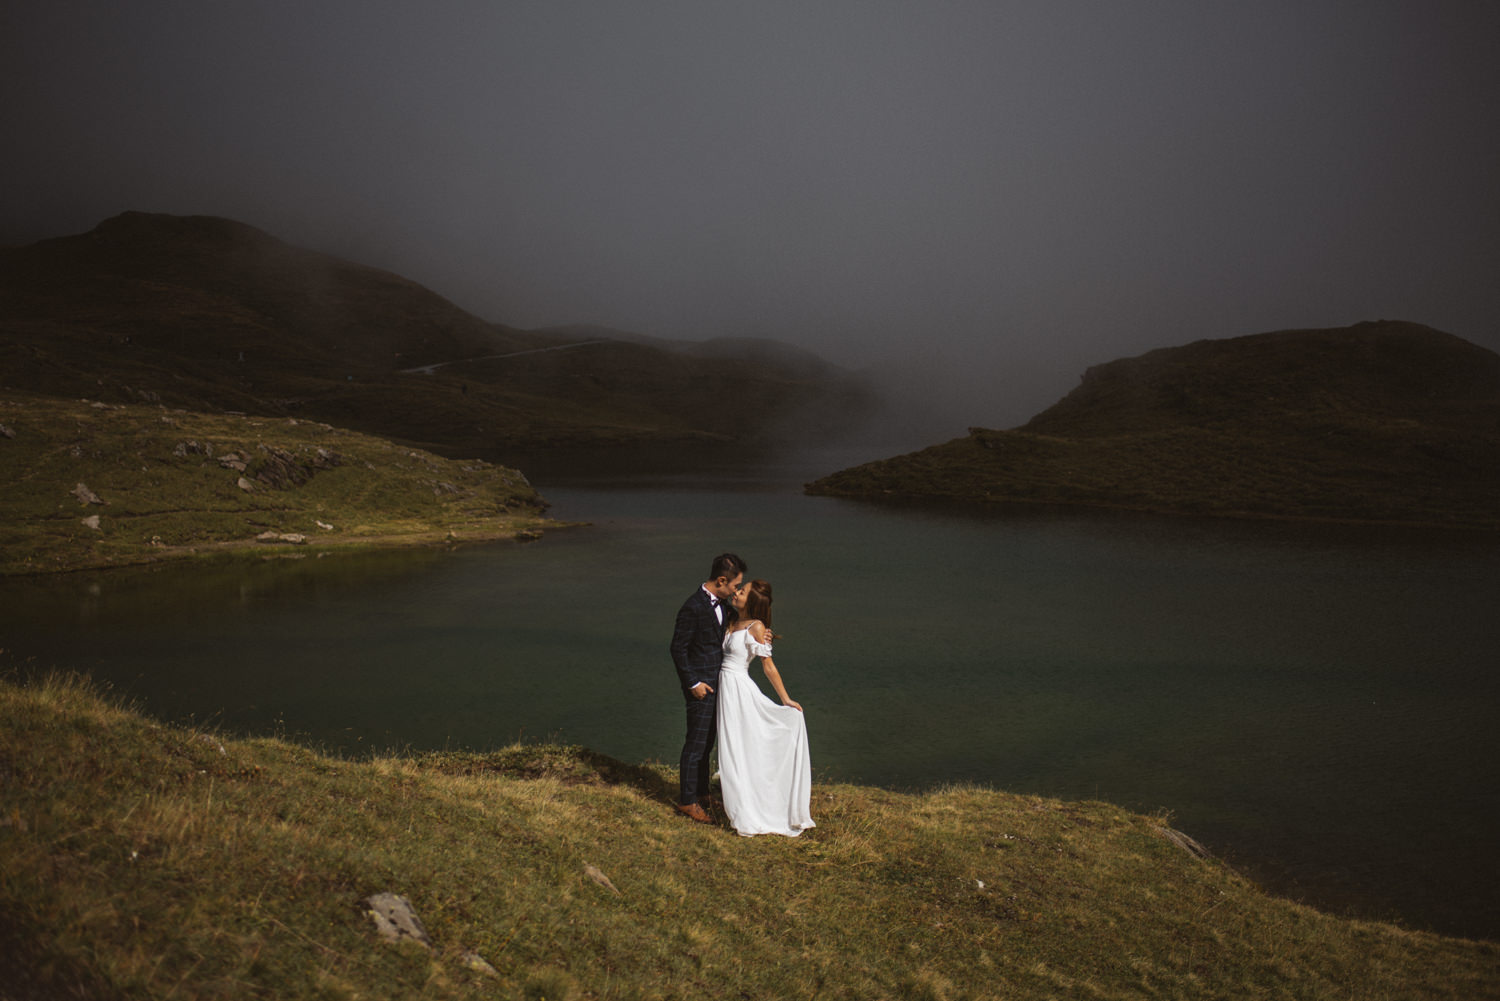 An Elopement in the Swiss Alps in Grindelwald by KatjaSimon Photography